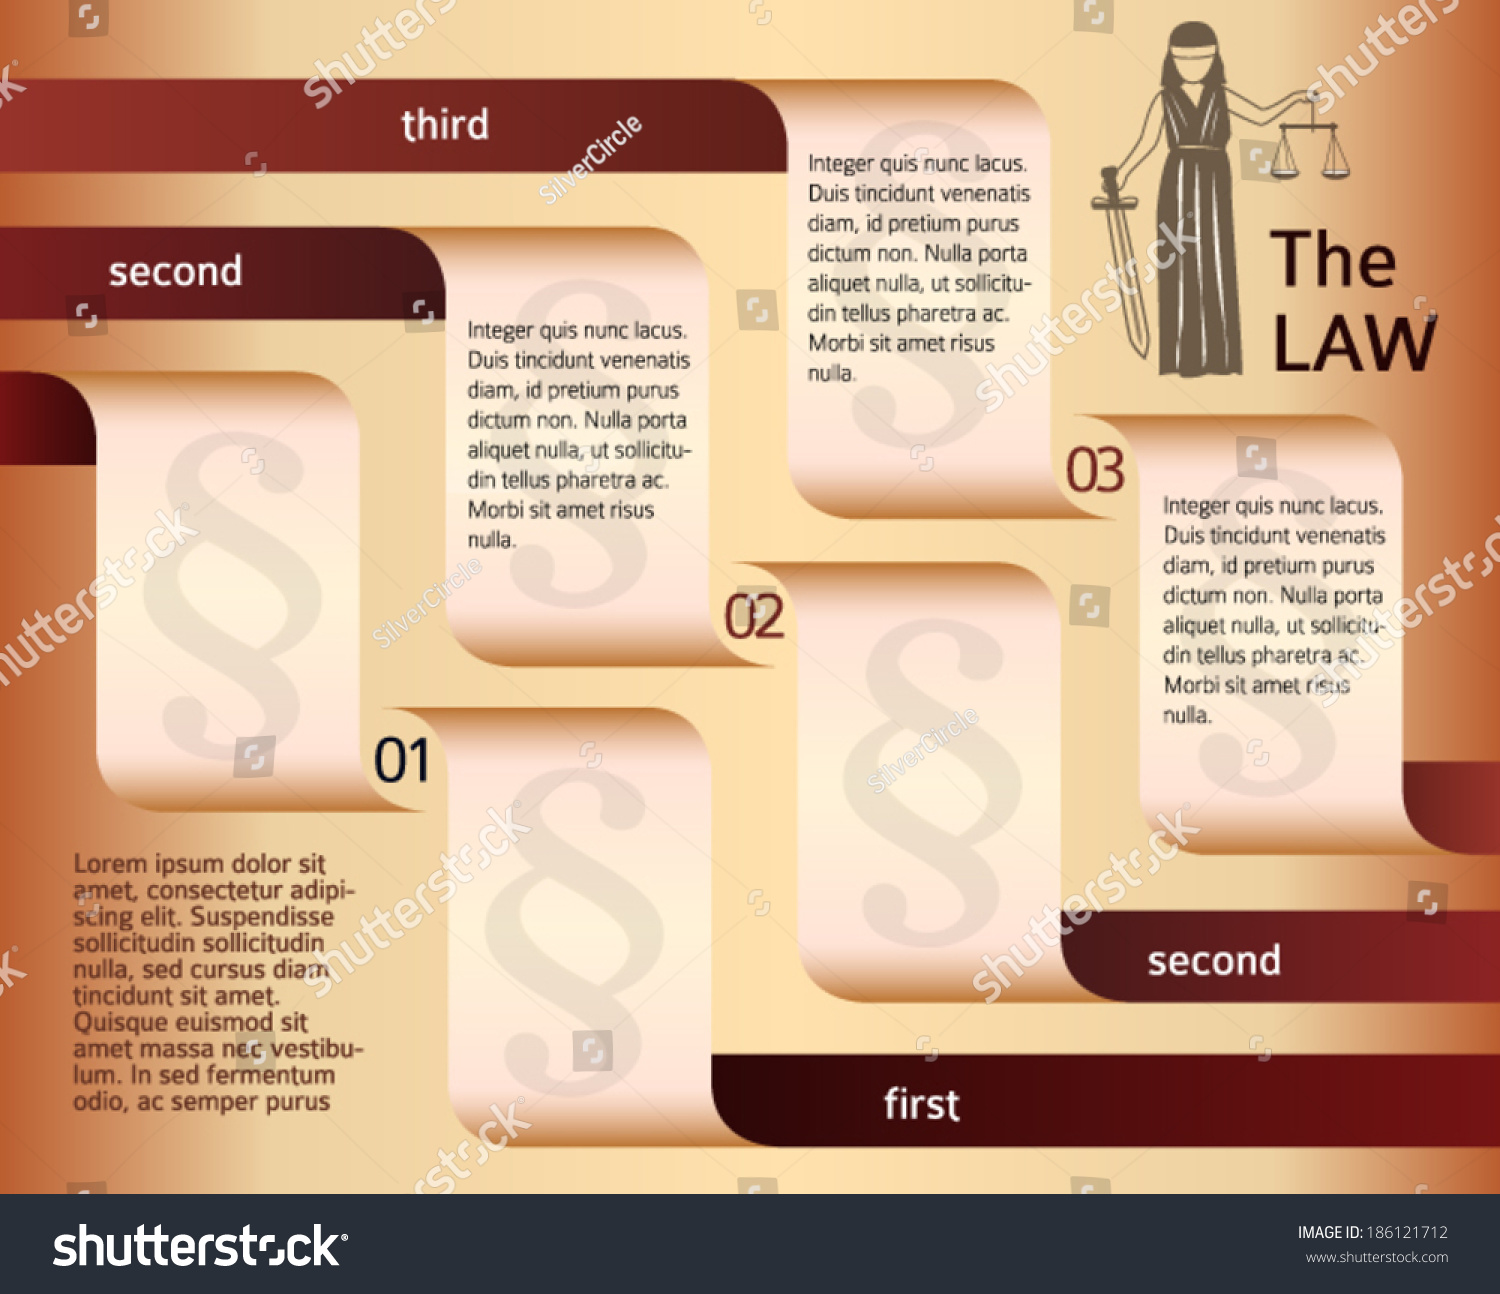 Modern Design Style Infographic Legal Law Stock Vector - Law firm brochure template